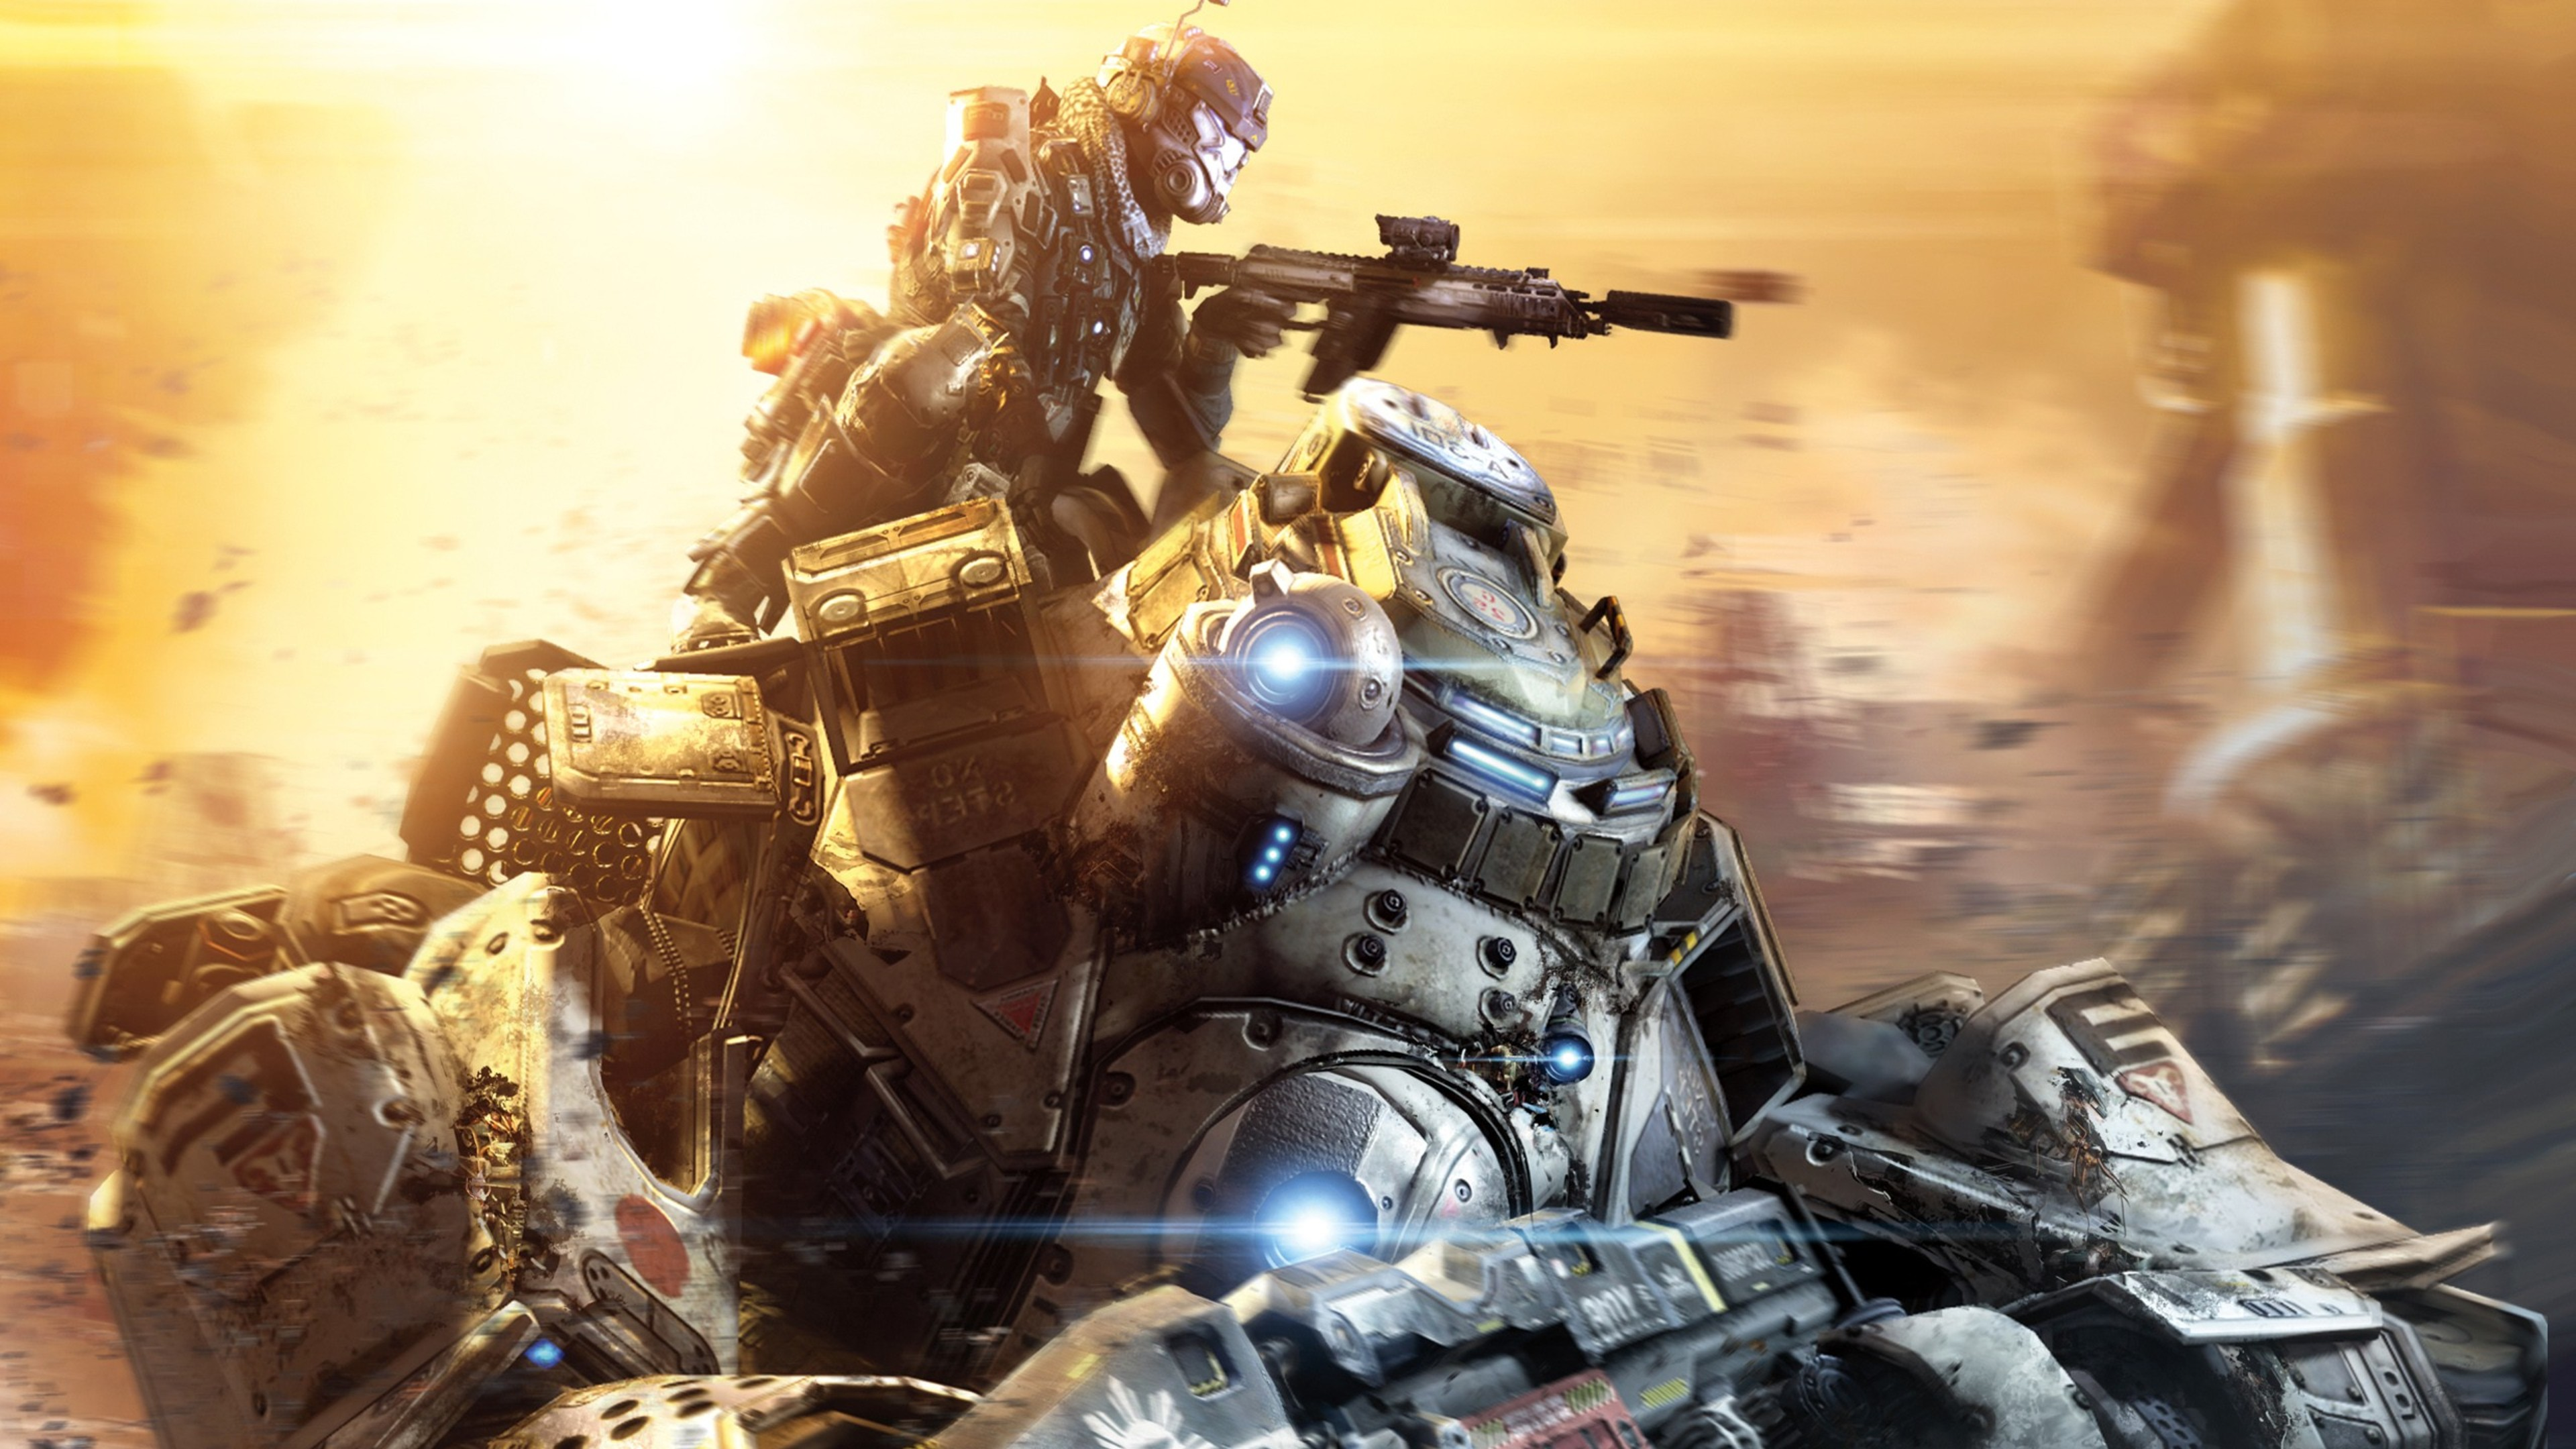 Titanfall game hd games 4k wallpapers images - Epic titanfall 2 wallpapers ...